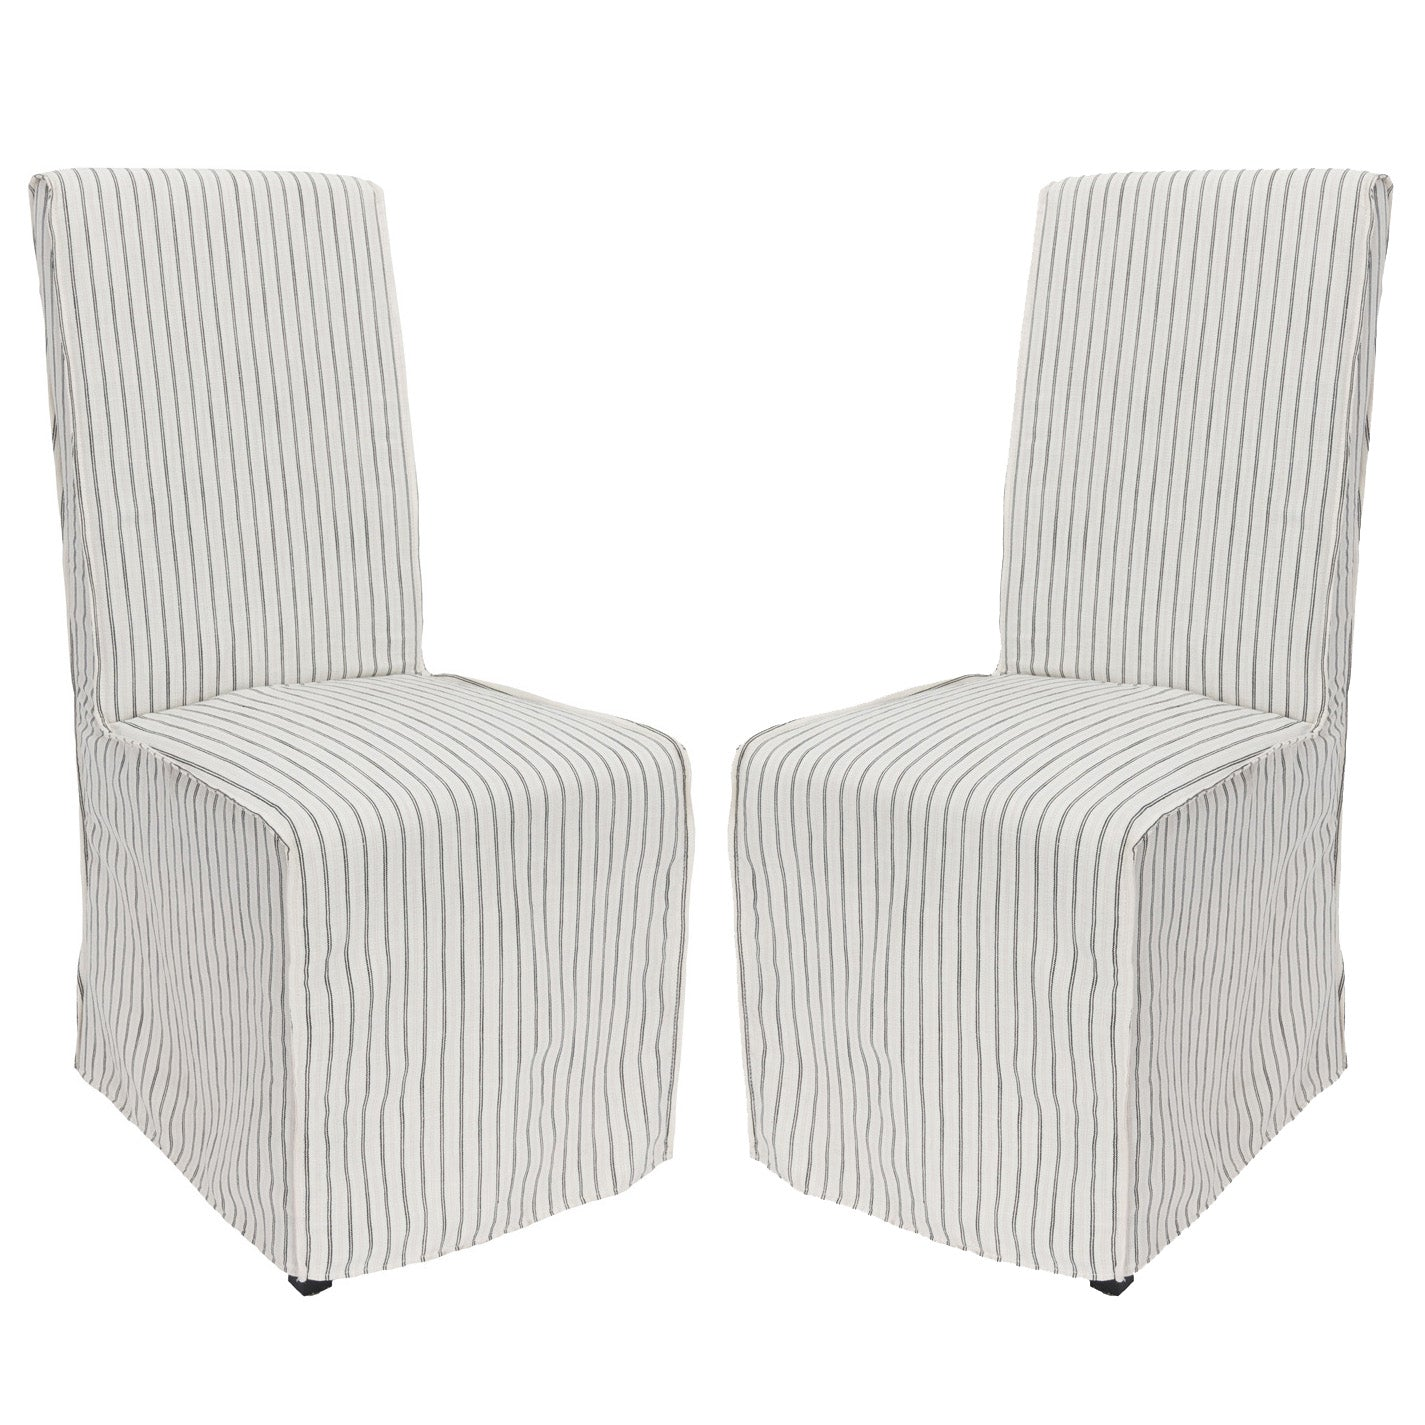 Arianna Slipcovered Dining Chair, Set of 2